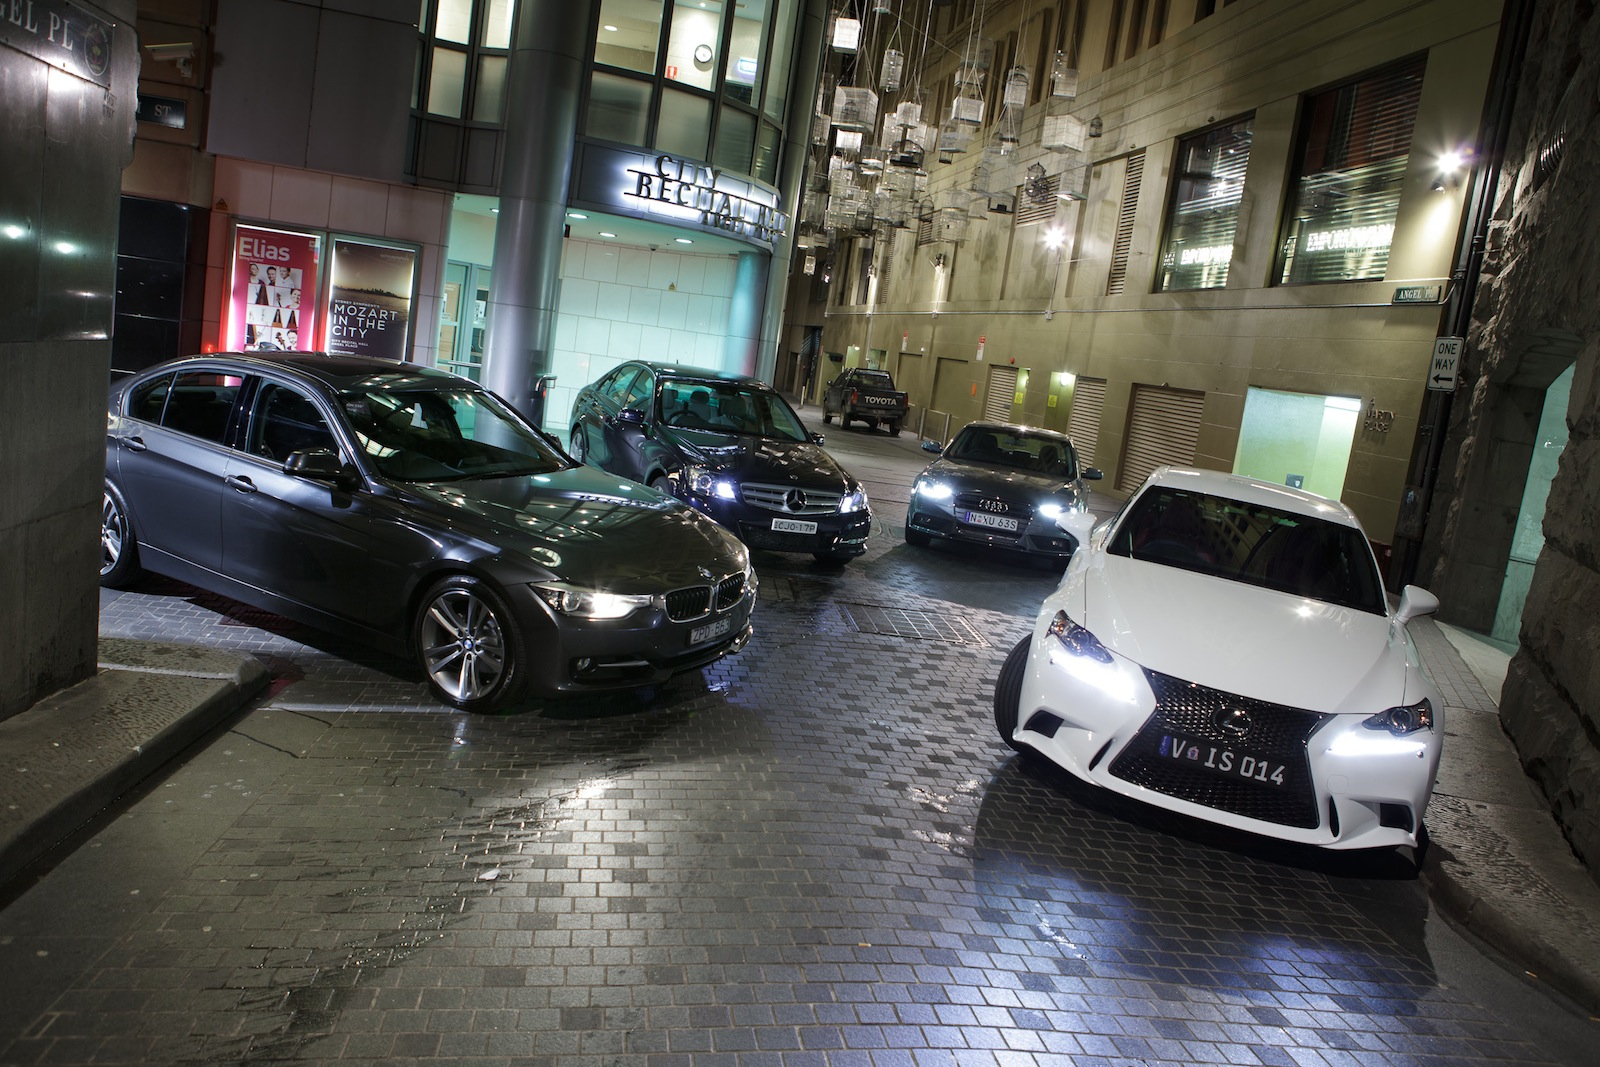 car compare with hoq bmw audi These models show the important roles four-door flagship chauffeured cars  continue to play for their makers.